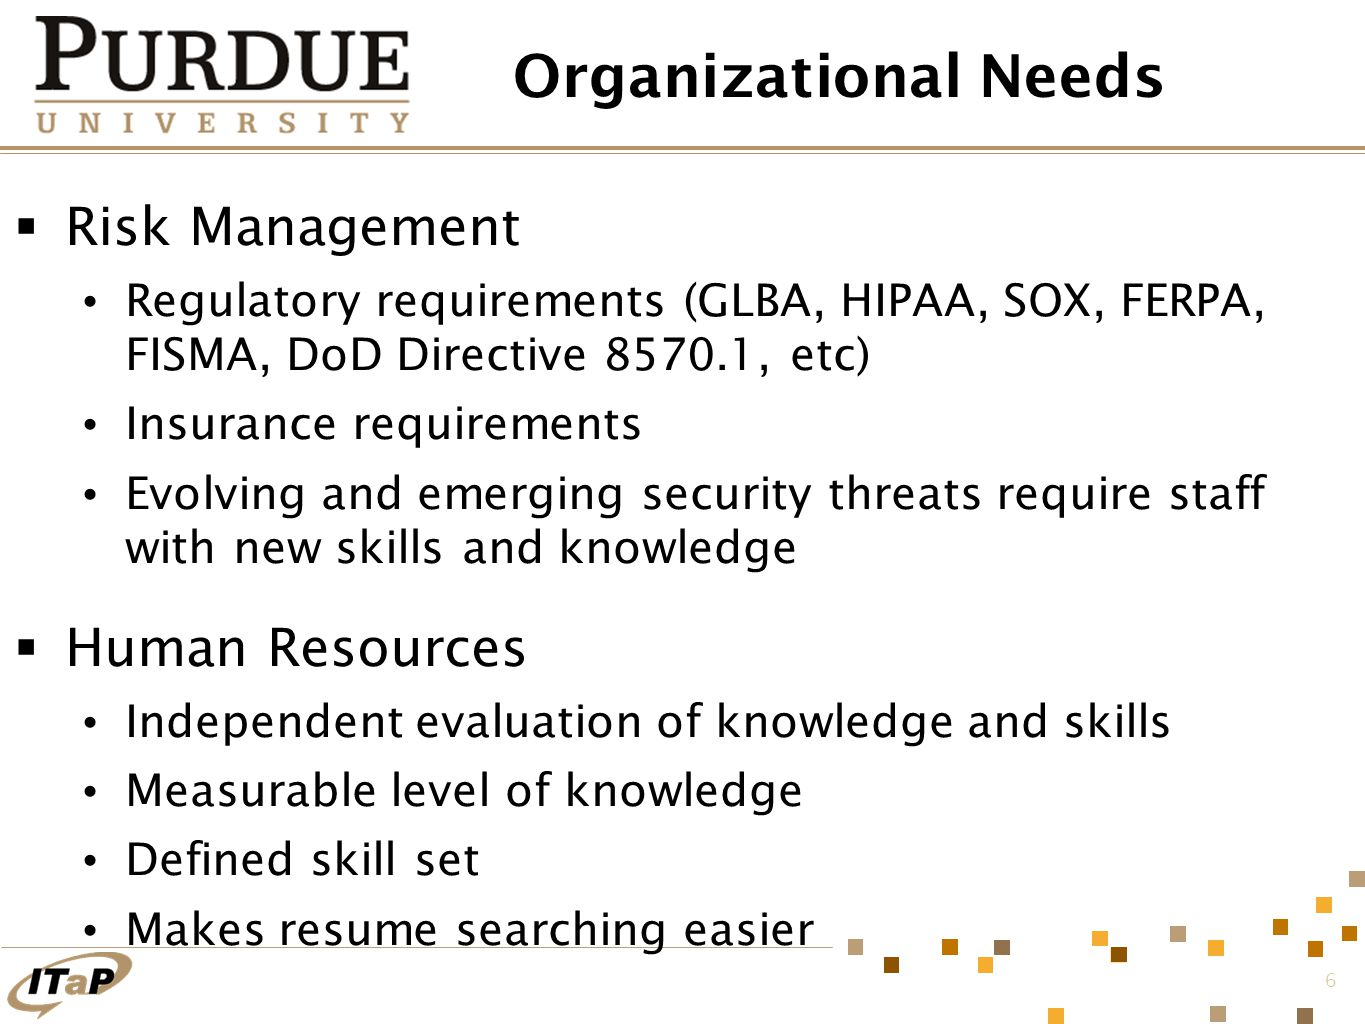 6 Organizational Needs  Risk Management Regulatory requirements (GLBA, HIPAA, SOX, FERPA, FISMA, DoD Directive 8570.1, etc) Insurance requirements Evolving and emerging security threats require staff with new skills and knowledge  Human Resources Independent evaluation of knowledge and skills Measurable level of knowledge Defined skill set Makes resume searching easier